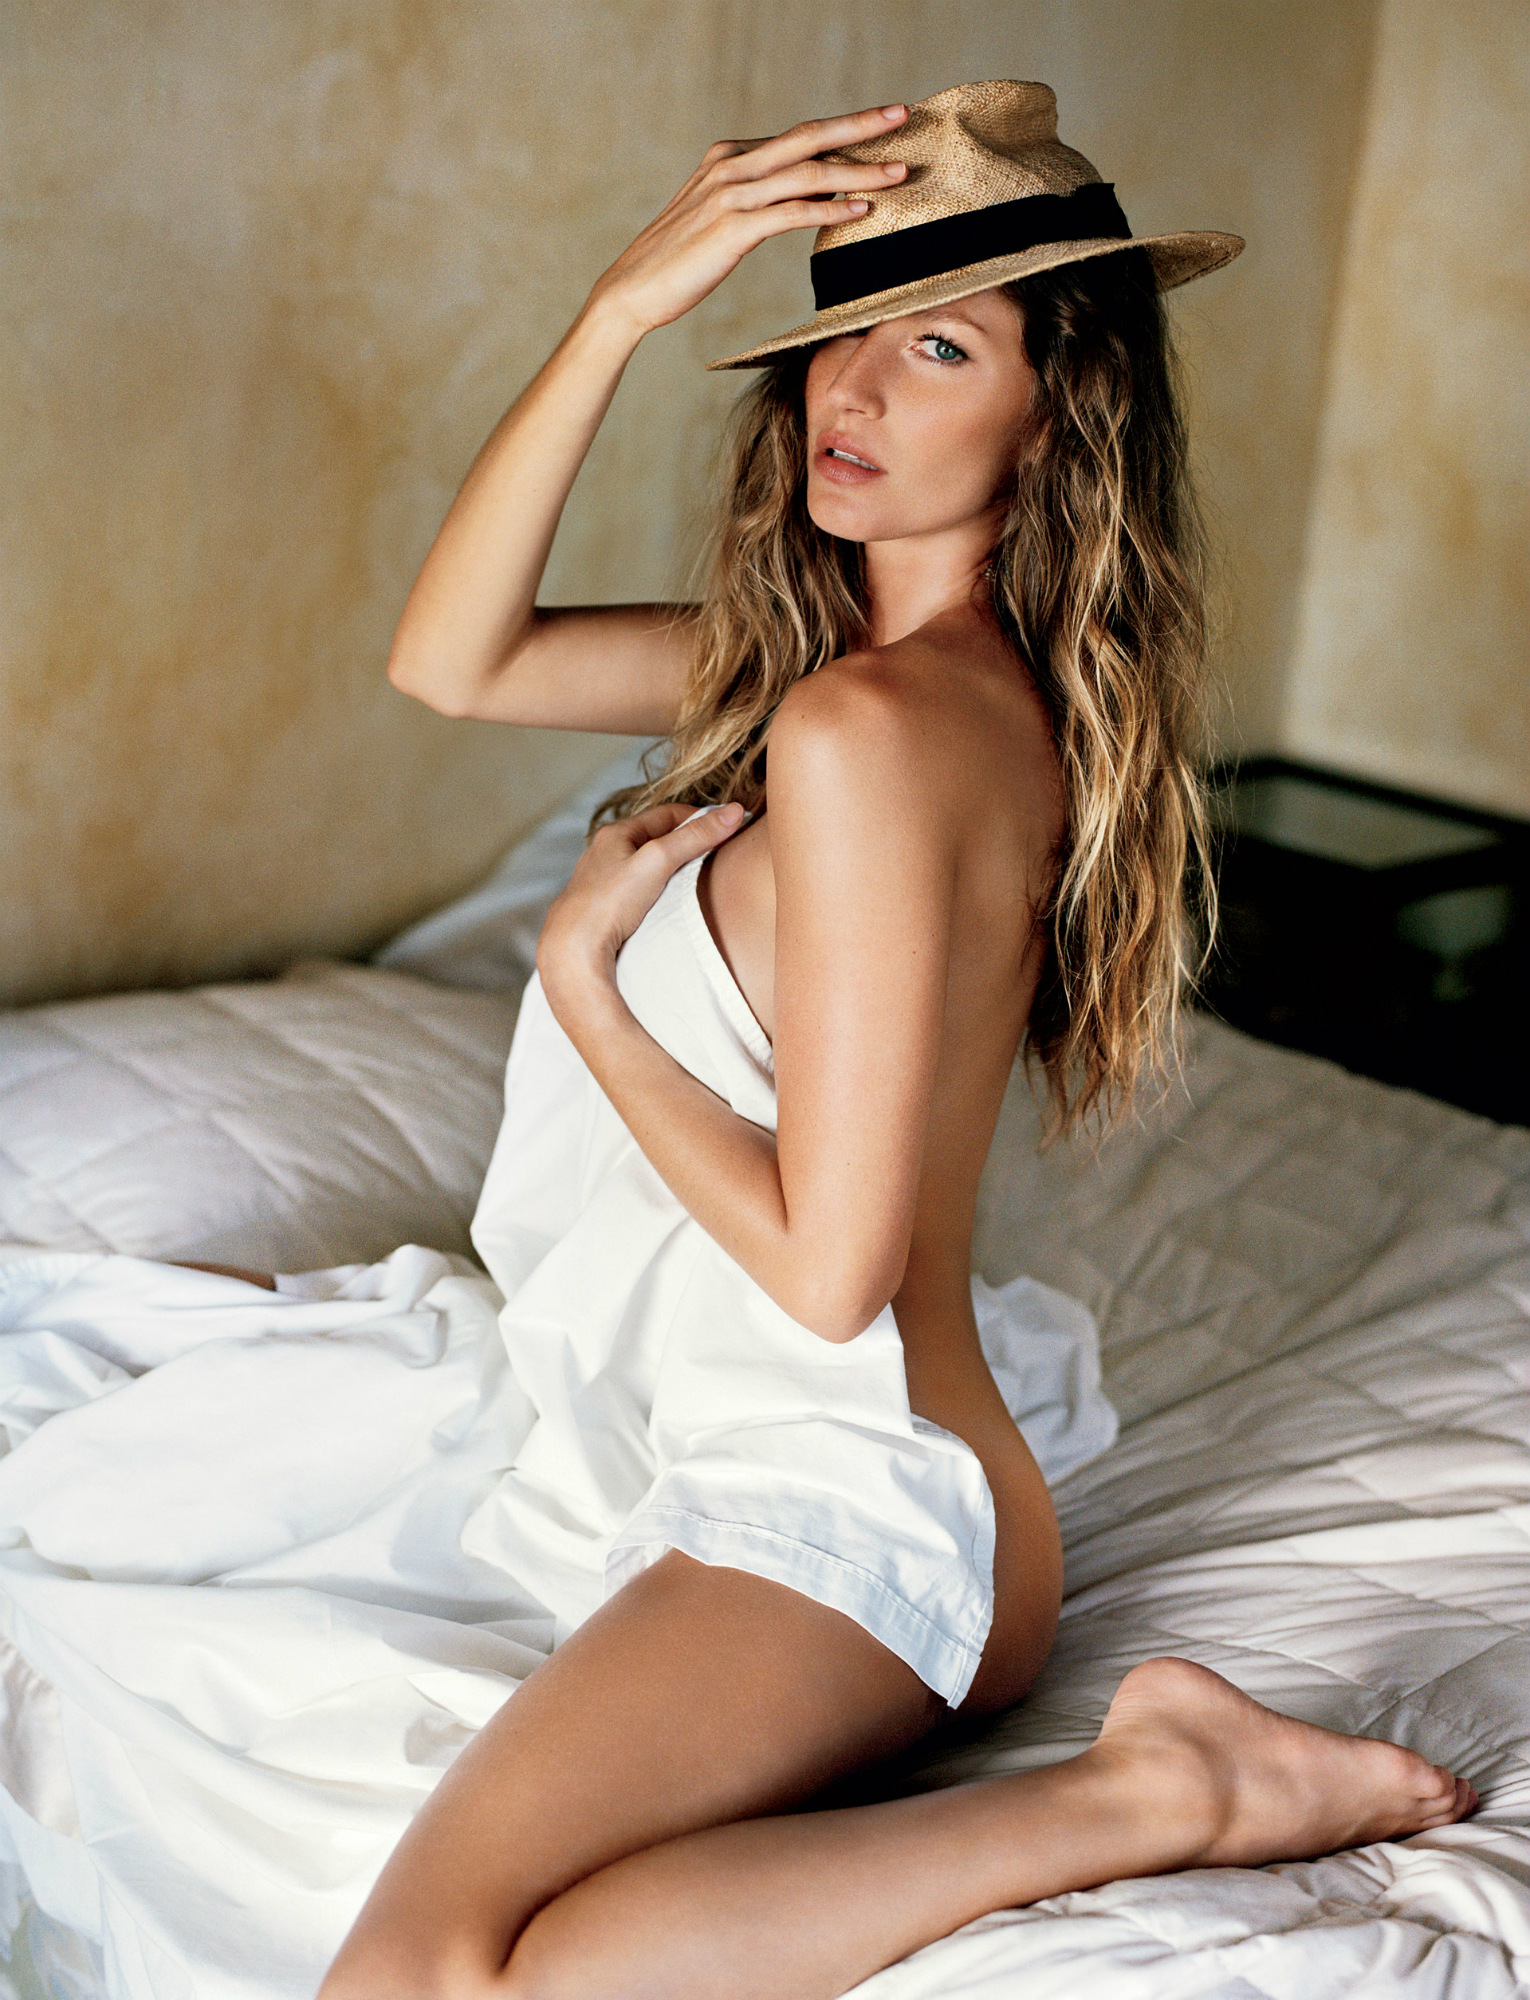 Gisele Bündchen Pics, Celebrity Collection